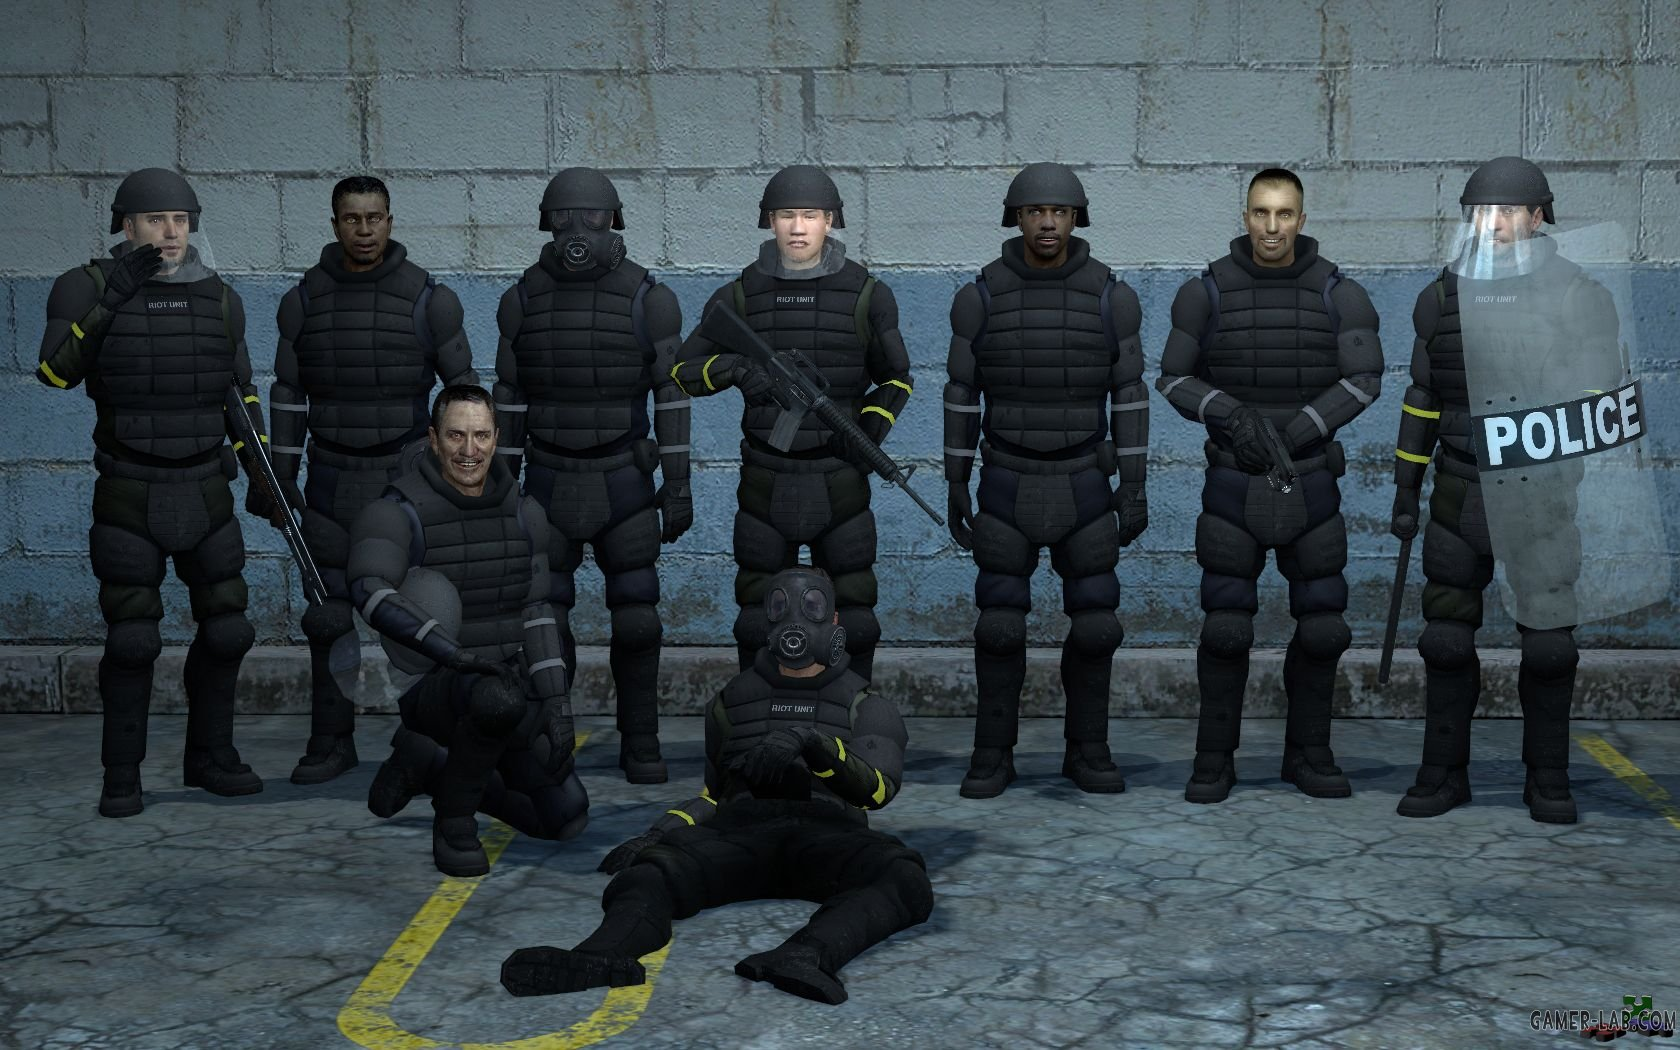 L4D2 Human Riot Officers v1.5